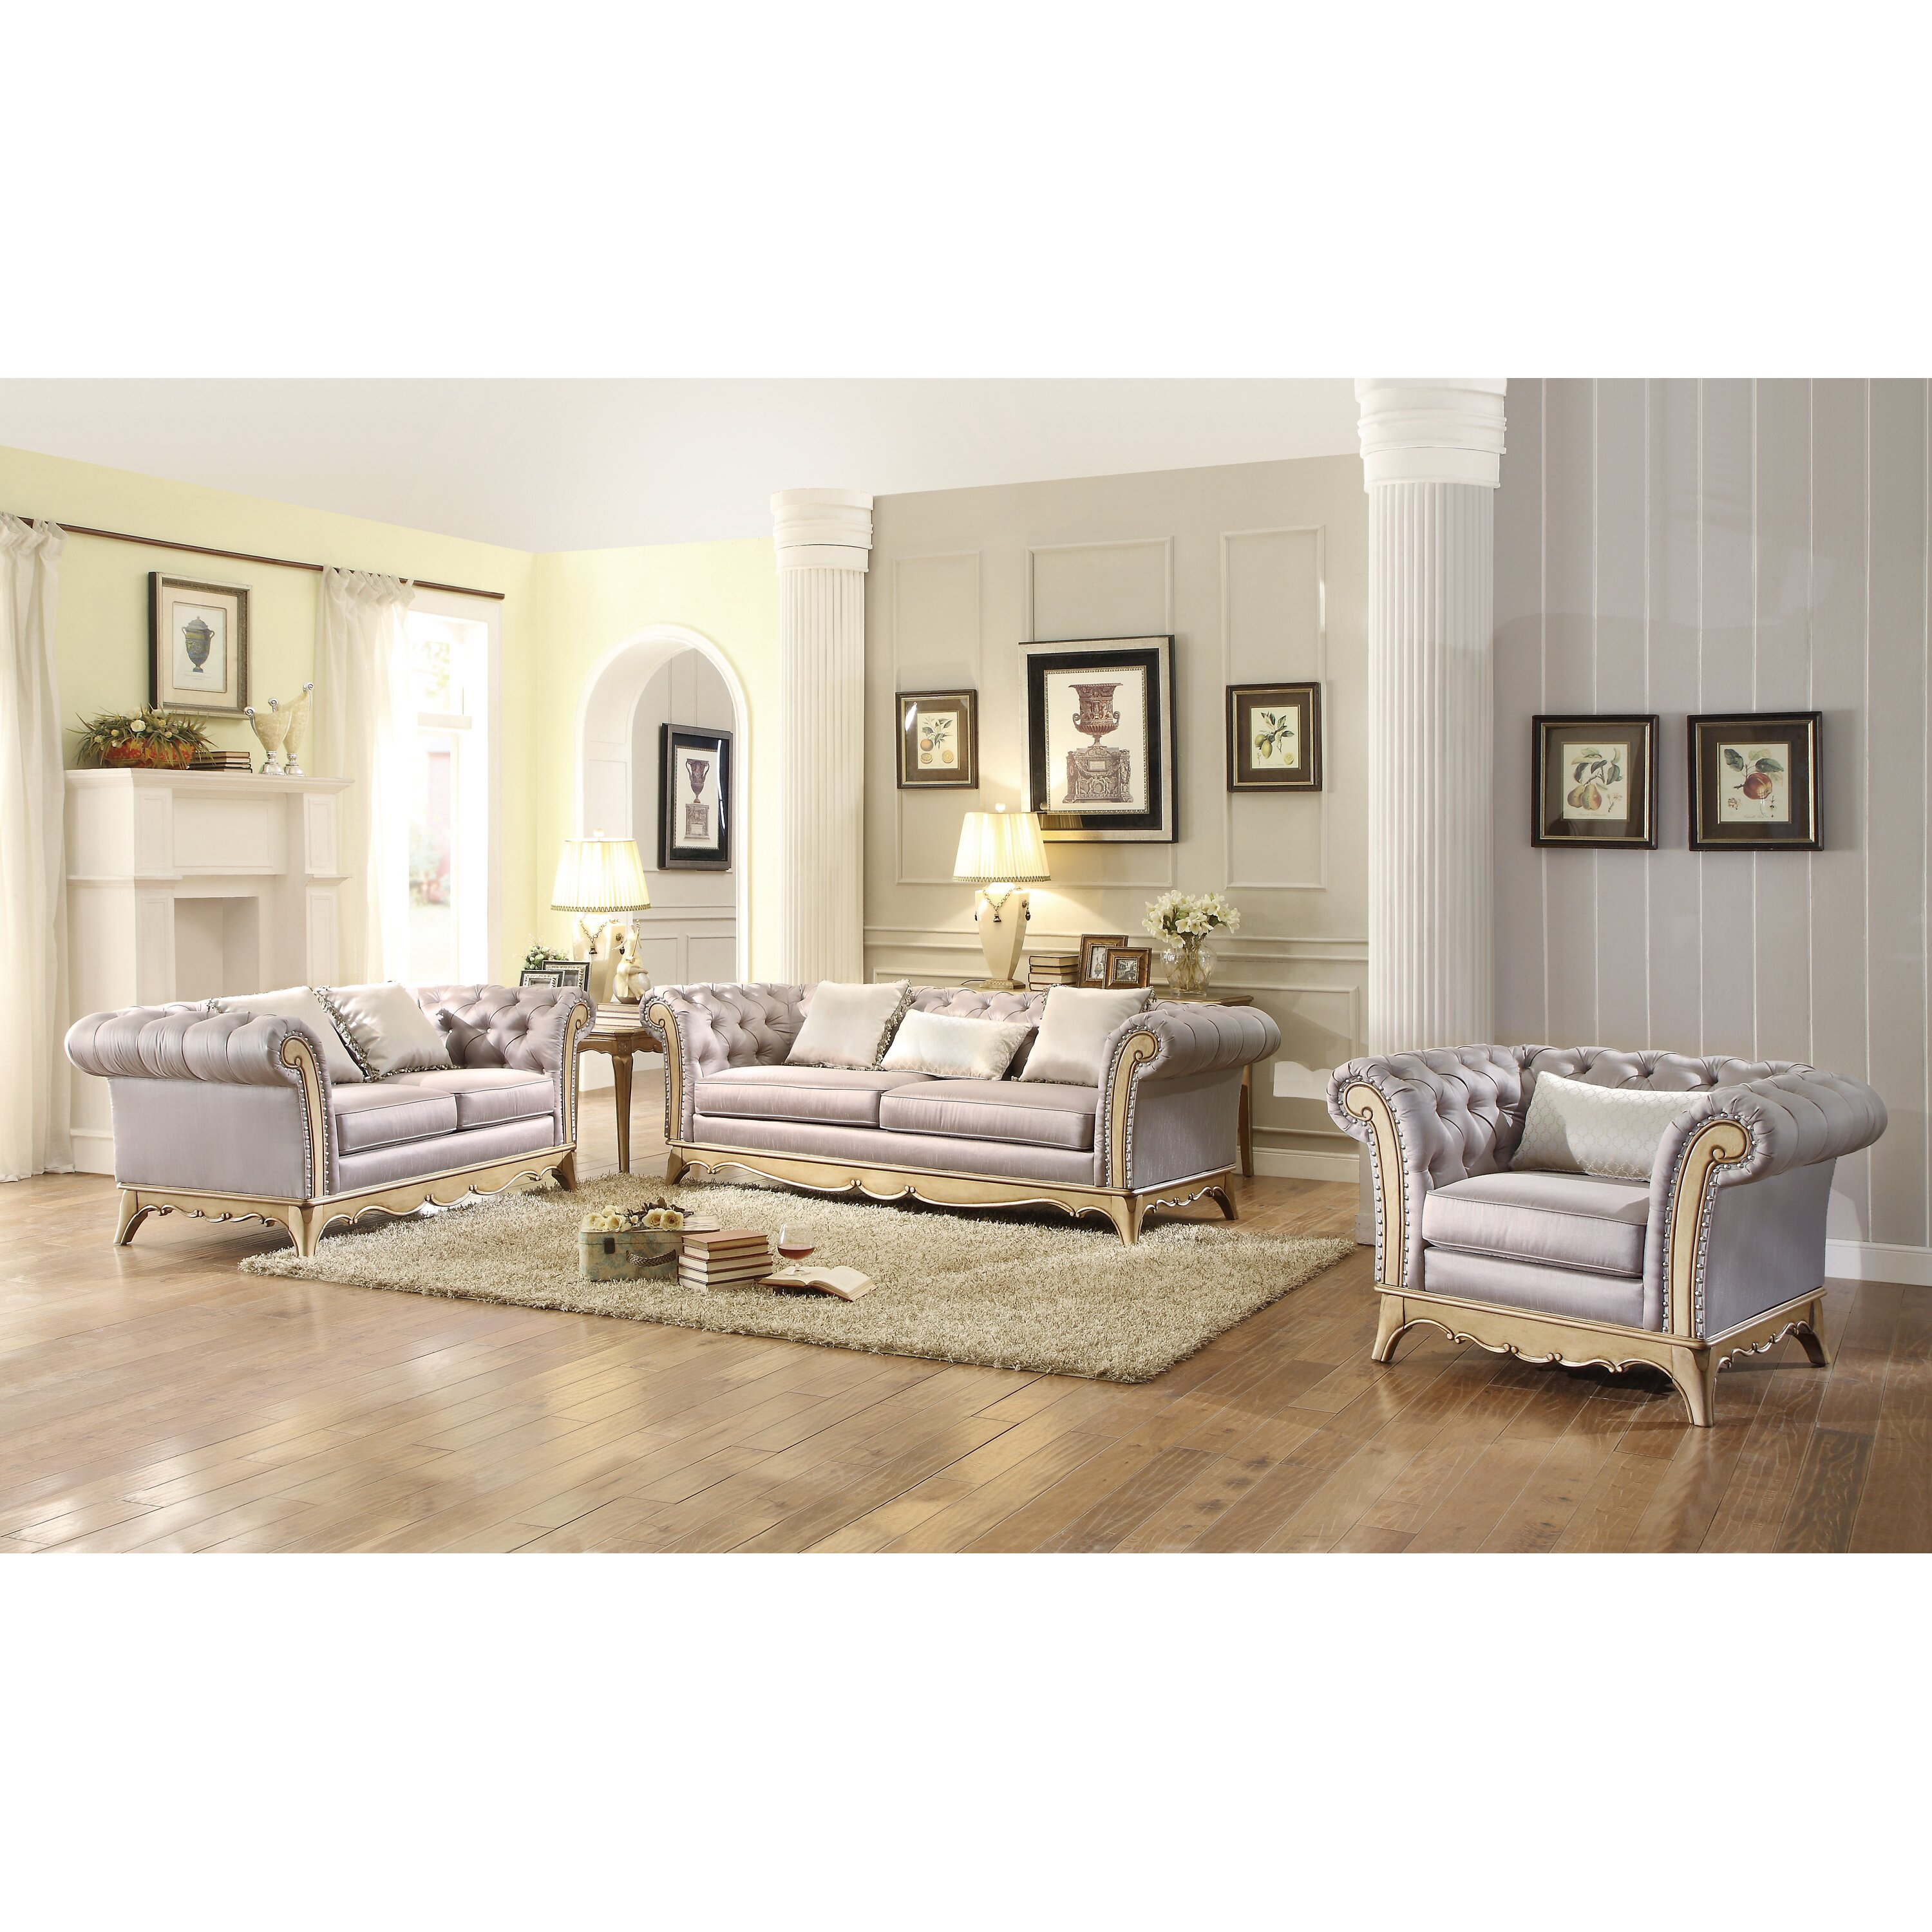 Living Room Furniture Ct Astoria Grand Connecticut Living Room Collection Reviews